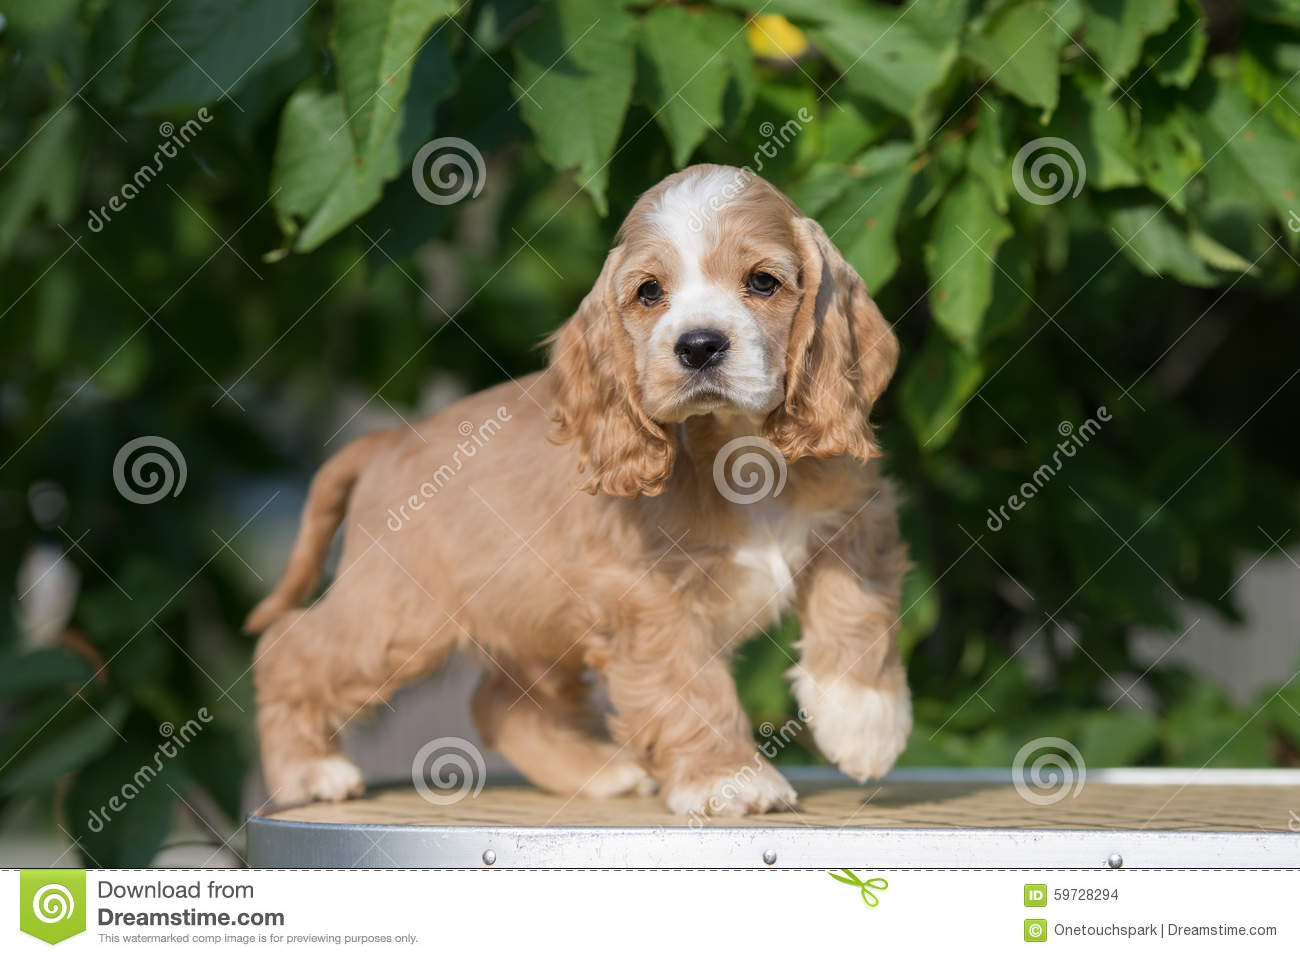 Red And White American Cocker Spaniel Puppy Stock Photo Image Of Beauty Fawn 59728294